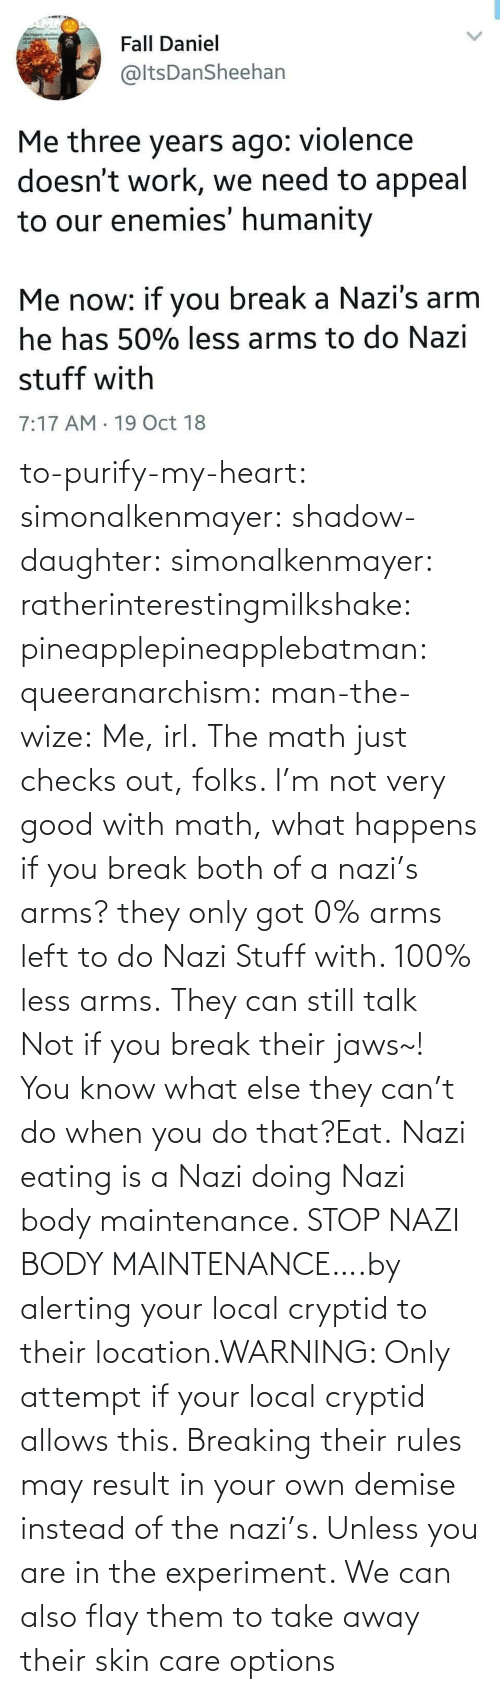 eating: to-purify-my-heart:  simonalkenmayer:  shadow-daughter: simonalkenmayer:  ratherinterestingmilkshake:  pineapplepineapplebatman:  queeranarchism:  man-the-wize: Me, irl. The math just checks out, folks.     I'm not very good with math, what happens if you break both of a nazi's arms?  they only got 0% arms left to do Nazi Stuff with. 100% less arms.  They can still talk  Not if you break their jaws~!  You know what else they can't do when you do that?Eat.   Nazi eating is a Nazi doing Nazi body maintenance. STOP NAZI BODY MAINTENANCE….by alerting your local cryptid to their location.WARNING: Only attempt if your local cryptid allows this. Breaking their rules may result in your own demise instead of the nazi's. Unless you are in the experiment.    We can also flay them to take away their skin care options